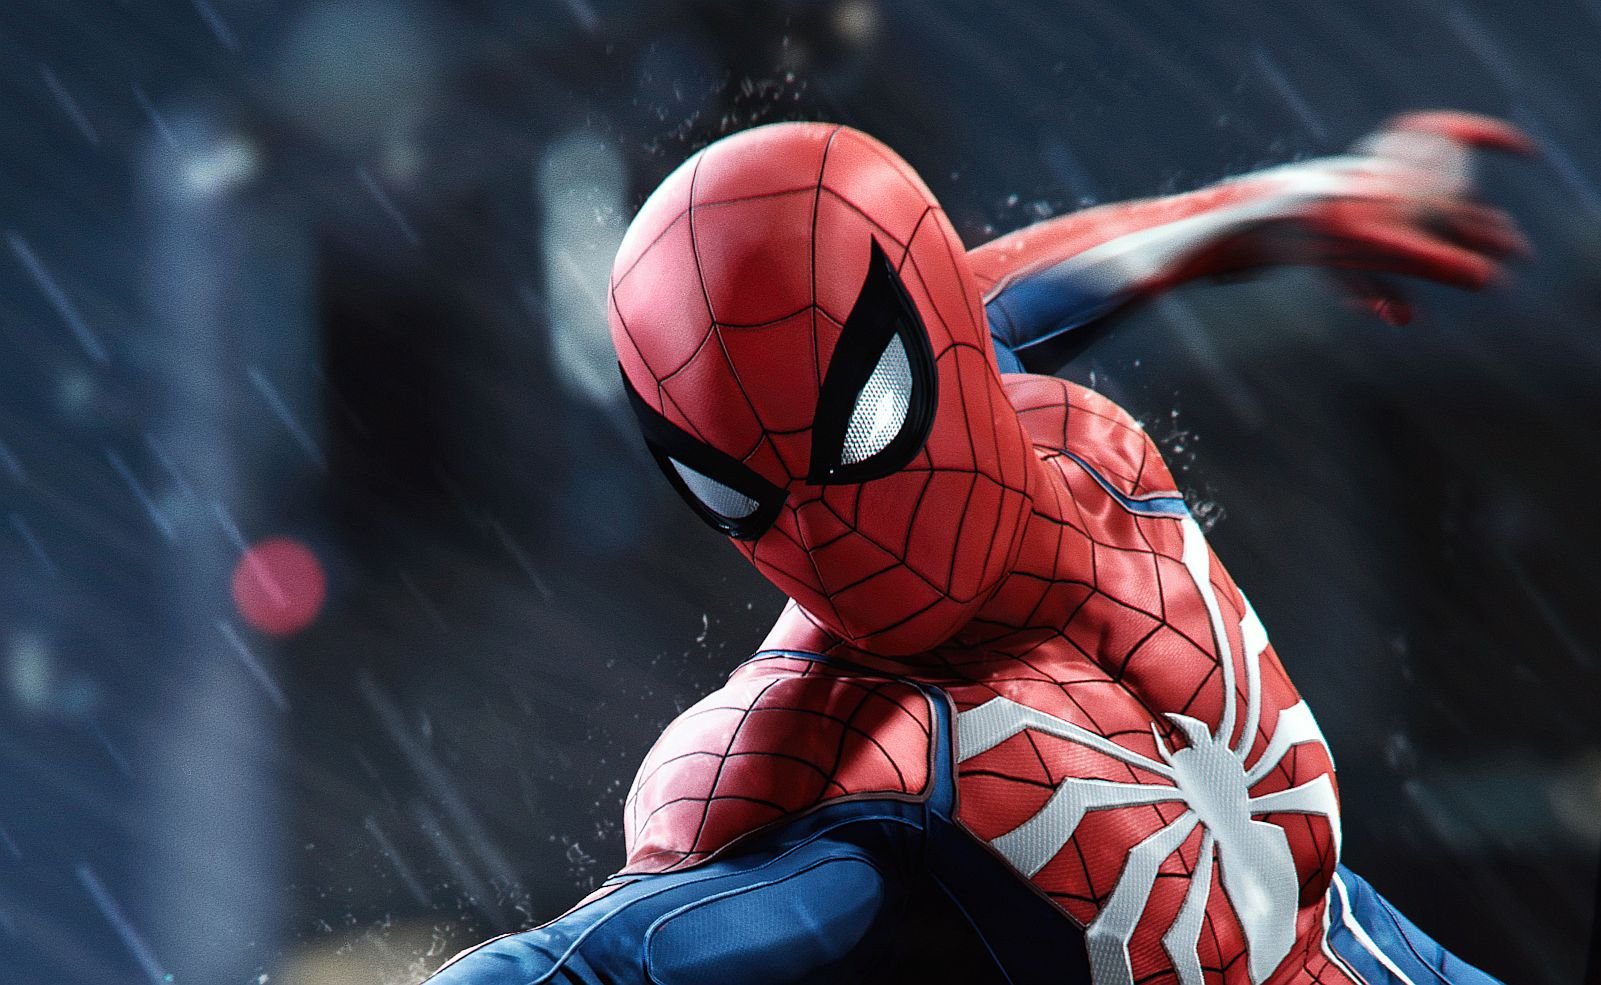 After causing a stir, UK retailer says Spider-Man PS4 exclusive in Marvel's Avengers not correct thumbnail